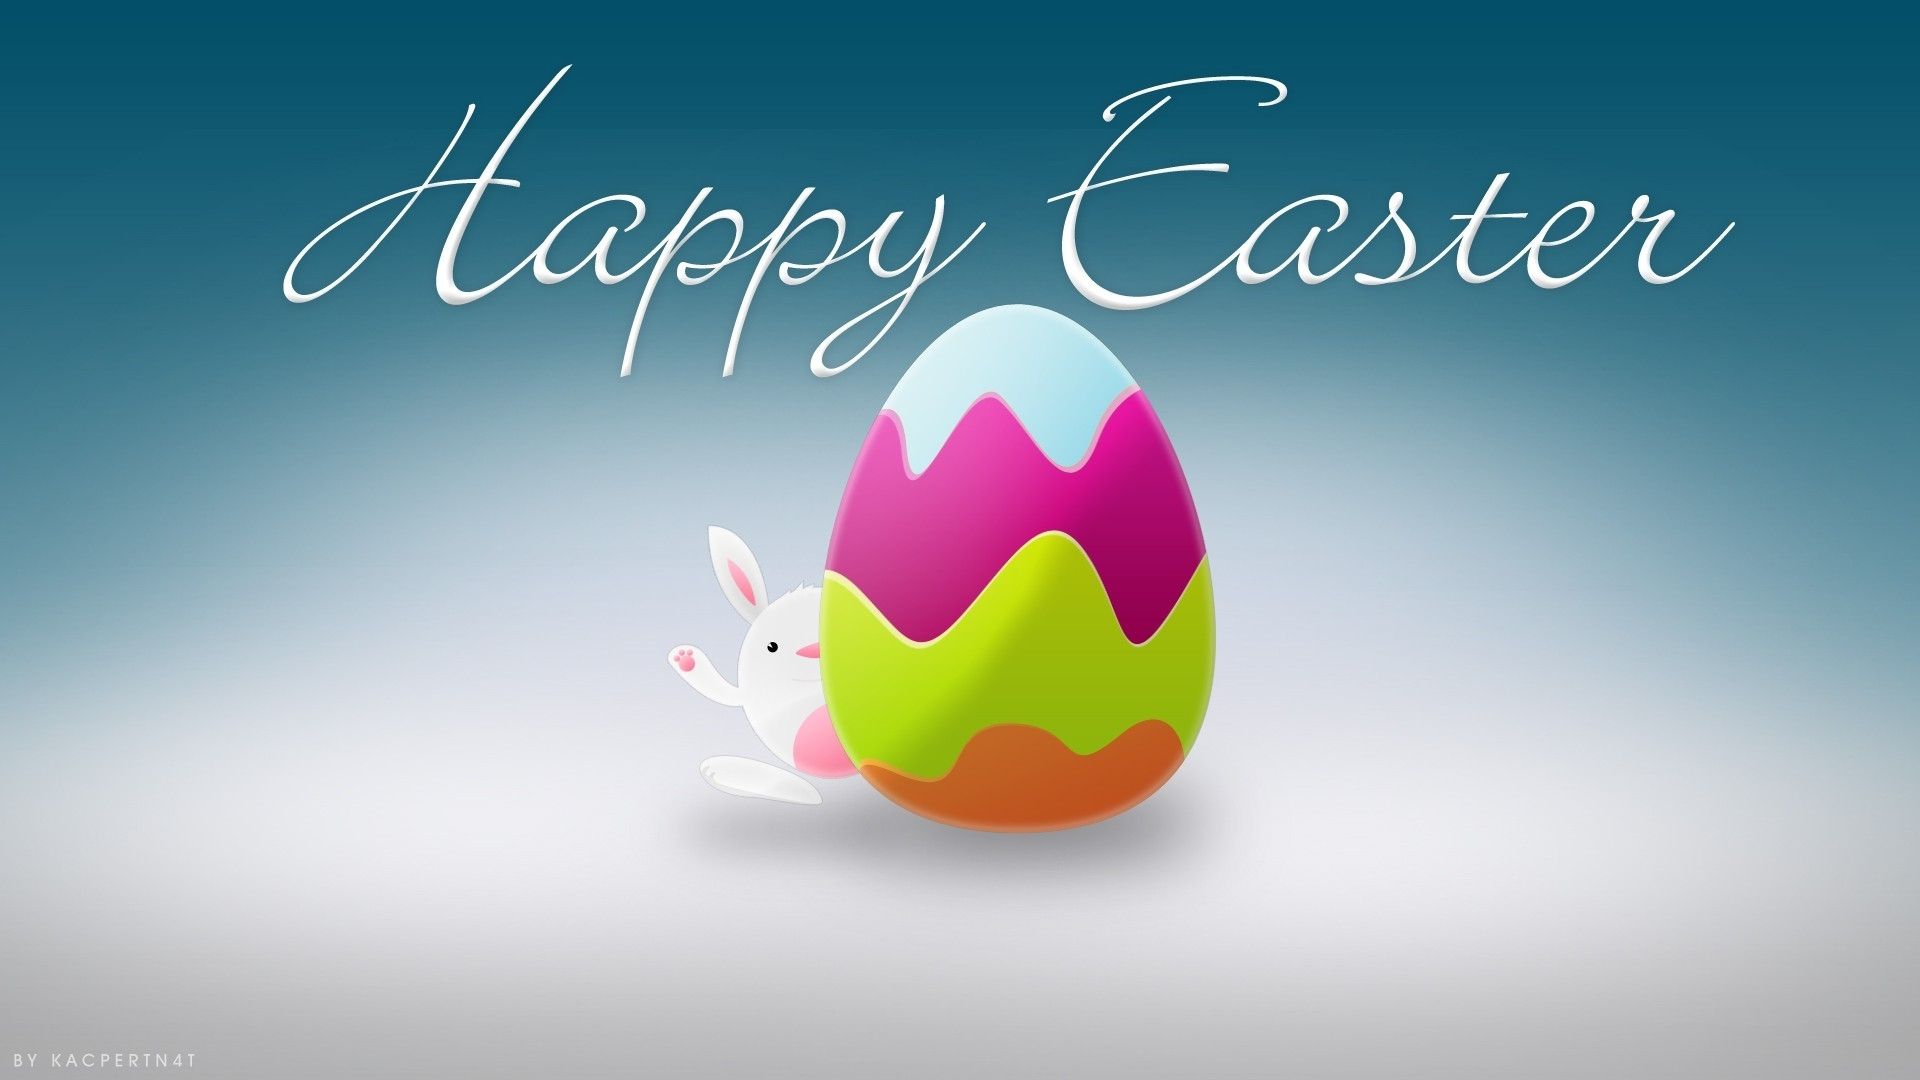 happy easter day 2013 hd wallpaper of greeting - hdwallpaper2013